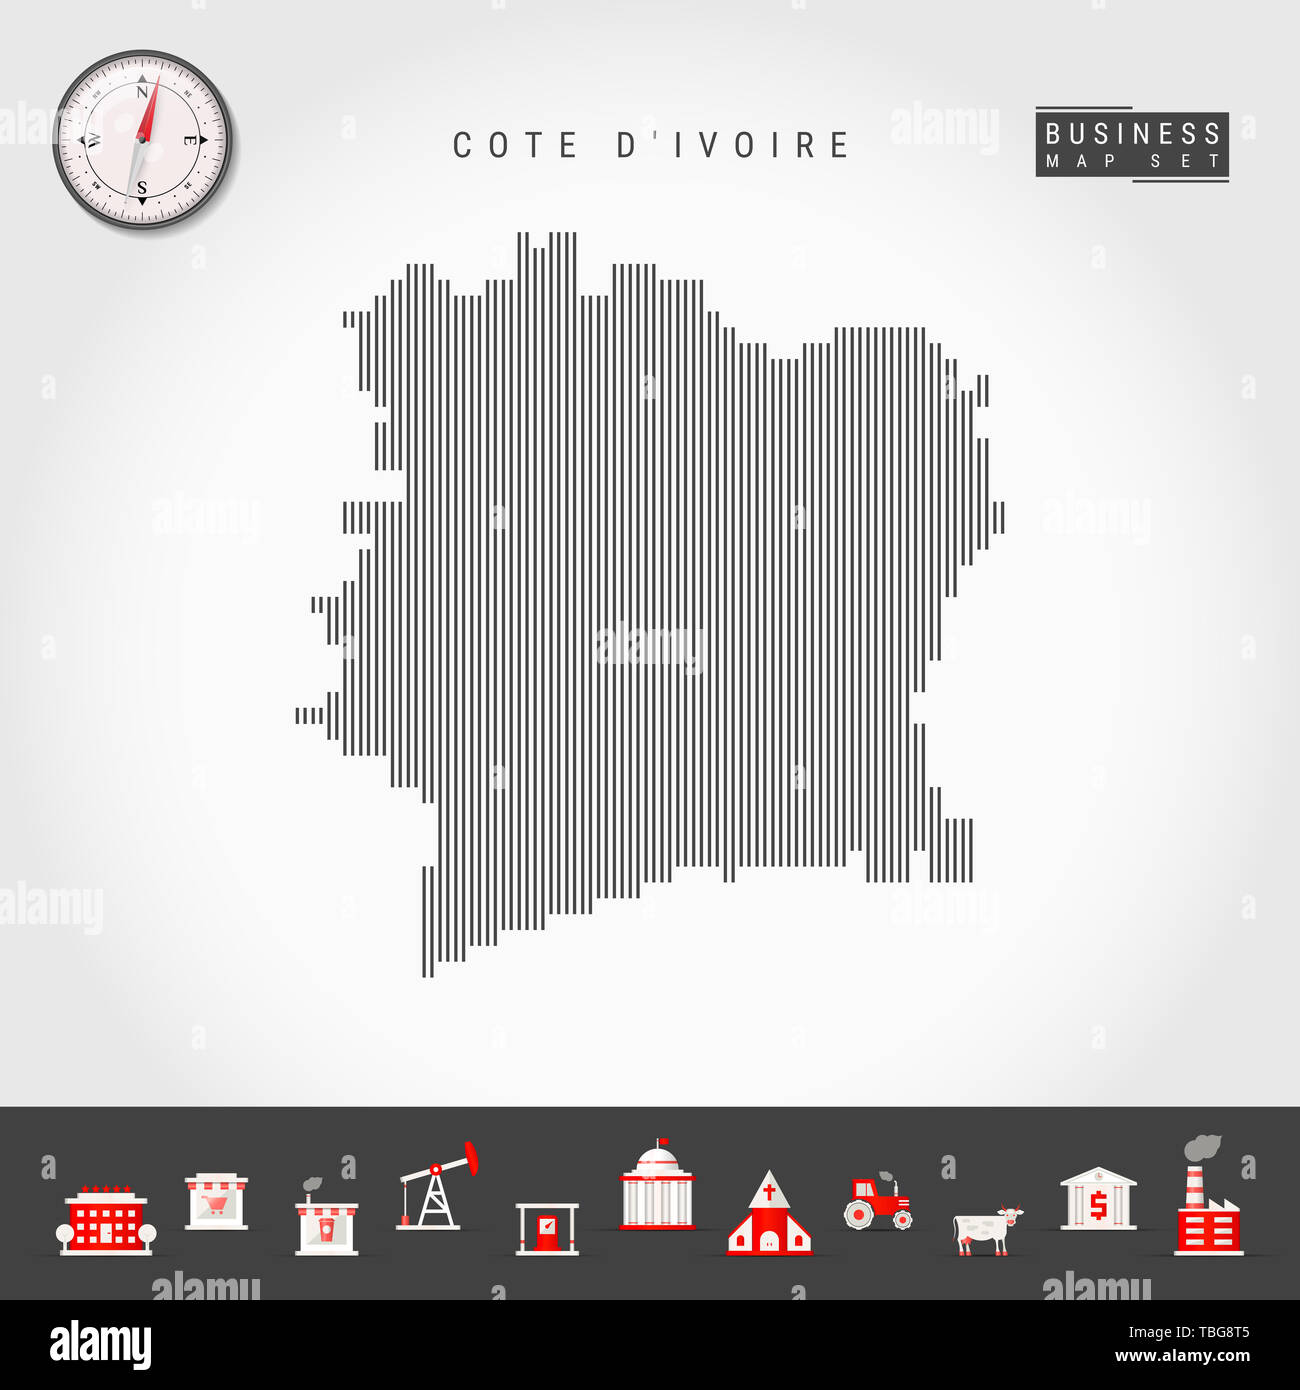 Vertical Lines Pattern Map of Cote d'Ivoire. Striped Simple Silhouette of Ivory Coast. Realistic Compass. Business Infographic Icons. - Stock Image